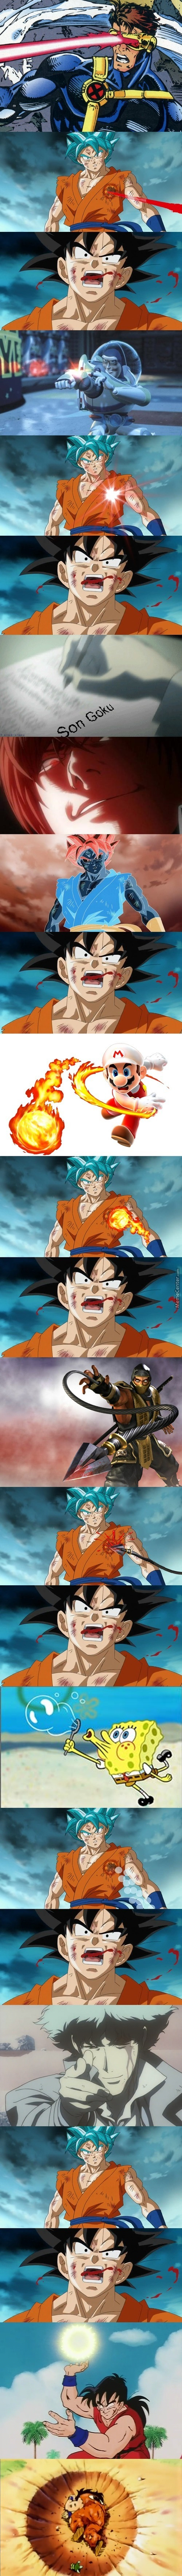 The Many Deaths Of Goku